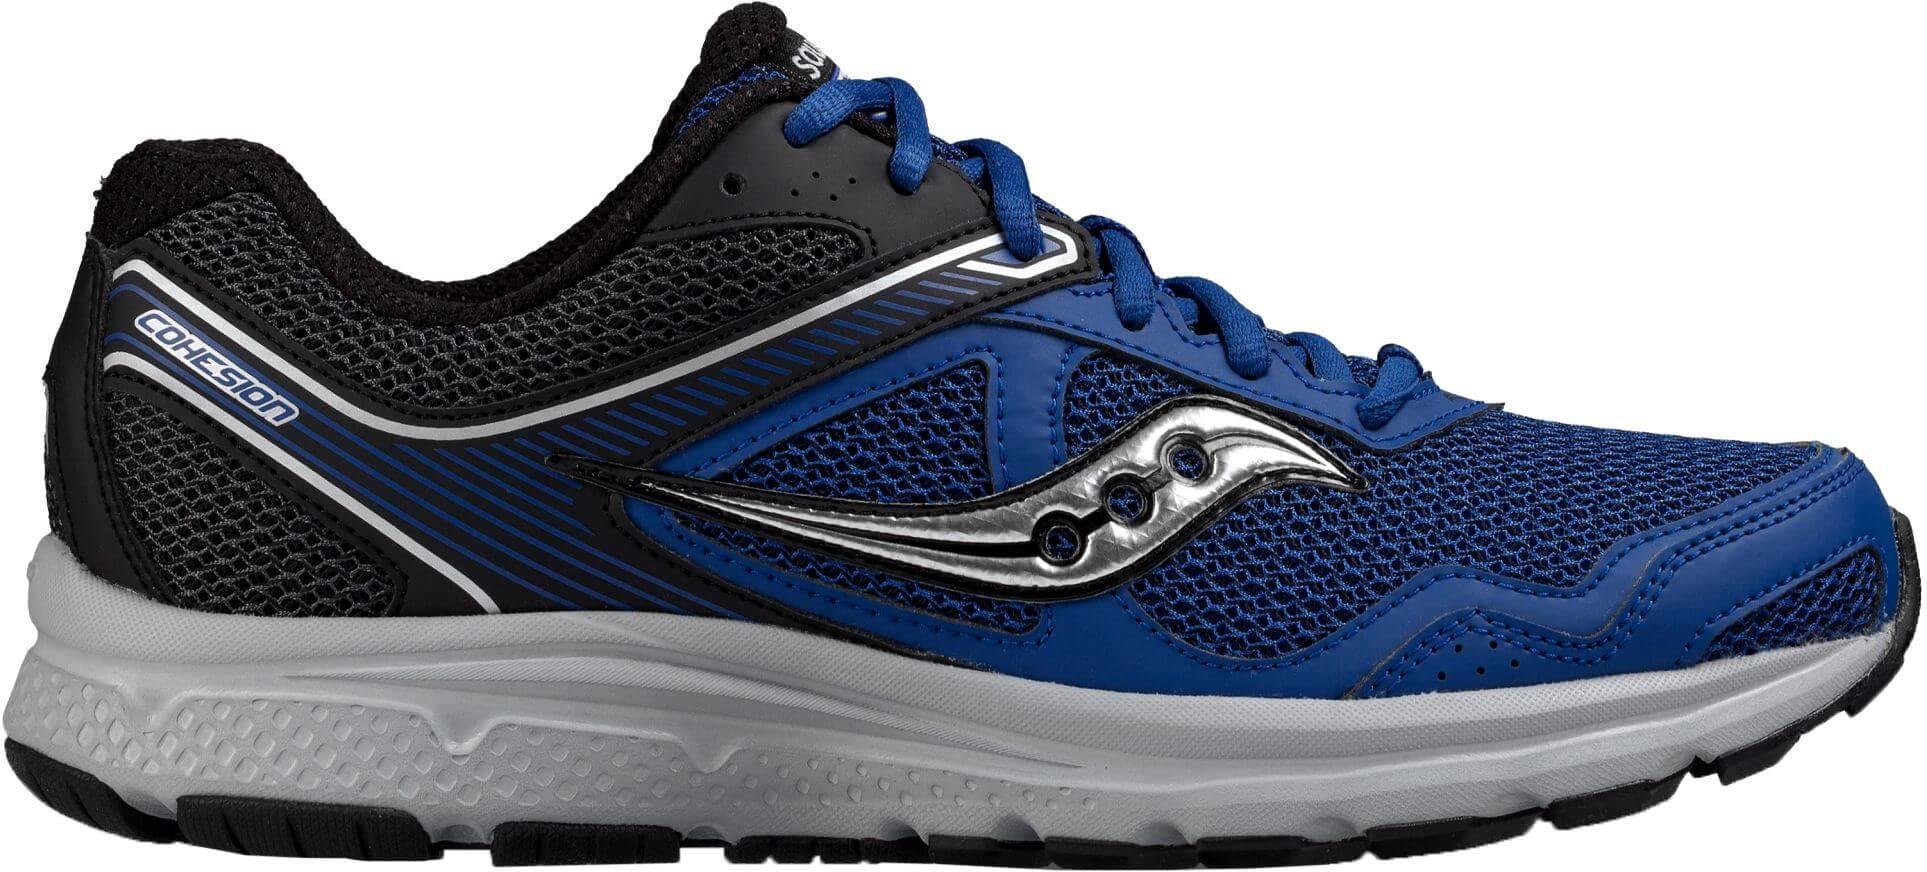 12. Saucony Men's Cohesion 10 Running Shoe